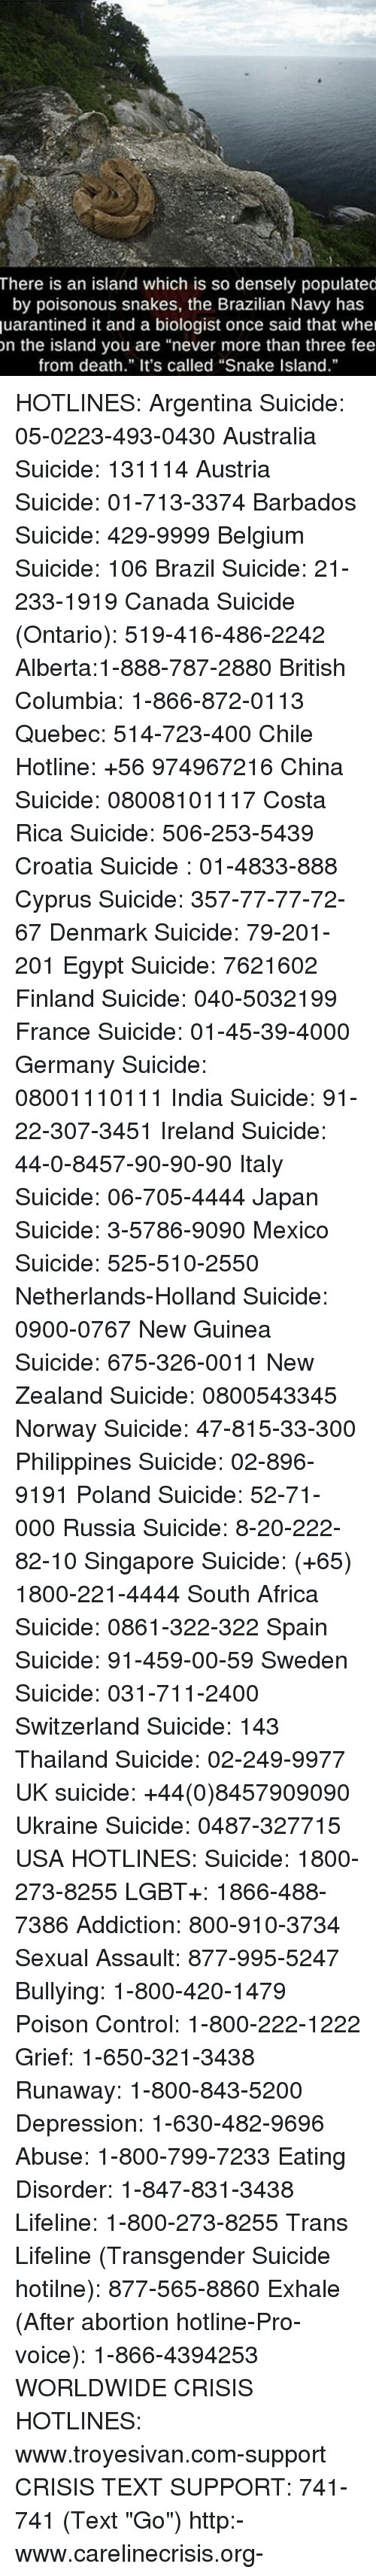 """poison control: There is an island which is so densely populated  by poisonous snakes, the Brazilian Navy has  quarantined it and a biologist once said that wher  on the island you are """"never more than three fee  from death."""" It's called """"Snake Island."""" HOTLINES: Argentina Suicide: 05-0223-493-0430 Australia Suicide: 131114 Austria Suicide: 01-713-3374 Barbados Suicide: 429-9999 Belgium Suicide: 106 Brazil Suicide: 21-233-1919 Canada Suicide (Ontario): 519-416-486-2242 Alberta:1-888-787-2880 British Columbia: 1-866-872-0113 Quebec: 514-723-400 Chile Hotline: +56 974967216 China Suicide: 08008101117 Costa Rica Suicide: 506-253-5439 Croatia Suicide : 01-4833-888 Cyprus Suicide: 357-77-77-72-67 Denmark Suicide: 79-201-201 Egypt Suicide: 7621602 Finland Suicide: 040-5032199 France Suicide: 01-45-39-4000 Germany Suicide: 08001110111 India Suicide: 91-22-307-3451 Ireland Suicide: 44-0-8457-90-90-90 Italy Suicide: 06-705-4444 Japan Suicide: 3-5786-9090 Mexico Suicide: 525-510-2550 Netherlands-Holland Suicide: 0900-0767 New Guinea Suicide: 675-326-0011 New Zealand Suicide: 0800543345 Norway Suicide: 47-815-33-300 Philippines Suicide: 02-896-9191 Poland Suicide: 52-71-000 Russia Suicide: 8-20-222-82-10 Singapore Suicide: (+65) 1800-221-4444 South Africa Suicide: 0861-322-322 Spain Suicide: 91-459-00-59 Sweden Suicide: 031-711-2400 Switzerland Suicide: 143 Thailand Suicide: 02-249-9977 UK suicide: +44(0)8457909090 Ukraine Suicide: 0487-327715 USA HOTLINES: Suicide: 1800-273-8255 LGBT+: 1866-488-7386 Addiction: 800-910-3734 Sexual Assault: 877-995-5247 Bullying: 1-800-420-1479 Poison Control: 1-800-222-1222 Grief: 1-650-321-3438 Runaway: 1-800-843-5200 Depression: 1-630-482-9696 Abuse: 1-800-799-7233 Eating Disorder: 1-847-831-3438 Lifeline: 1-800-273-8255 Trans Lifeline (Transgender Suicide hotilne): 877-565-8860 Exhale (After abortion hotline-Pro-voice): 1-866-4394253 WORLDWIDE CRISIS HOTLINES: www.troyesivan.com-support CRISIS TEXT SUPPORT: 741-741 (Text """"Go"""") http:-www.car"""